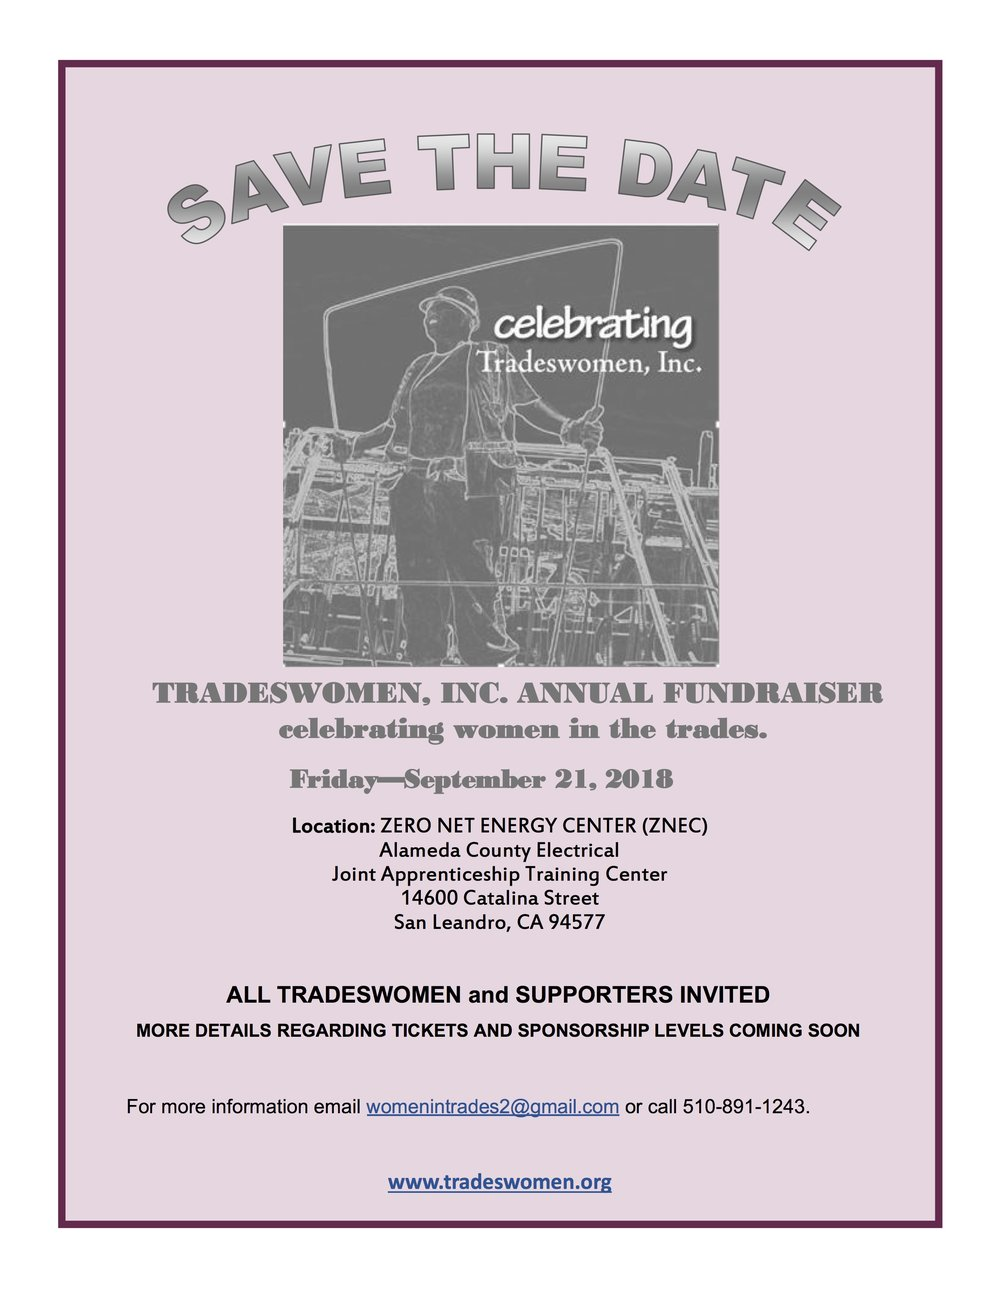 Tradeswomen Fundraiser_Save the Date51118.jpg